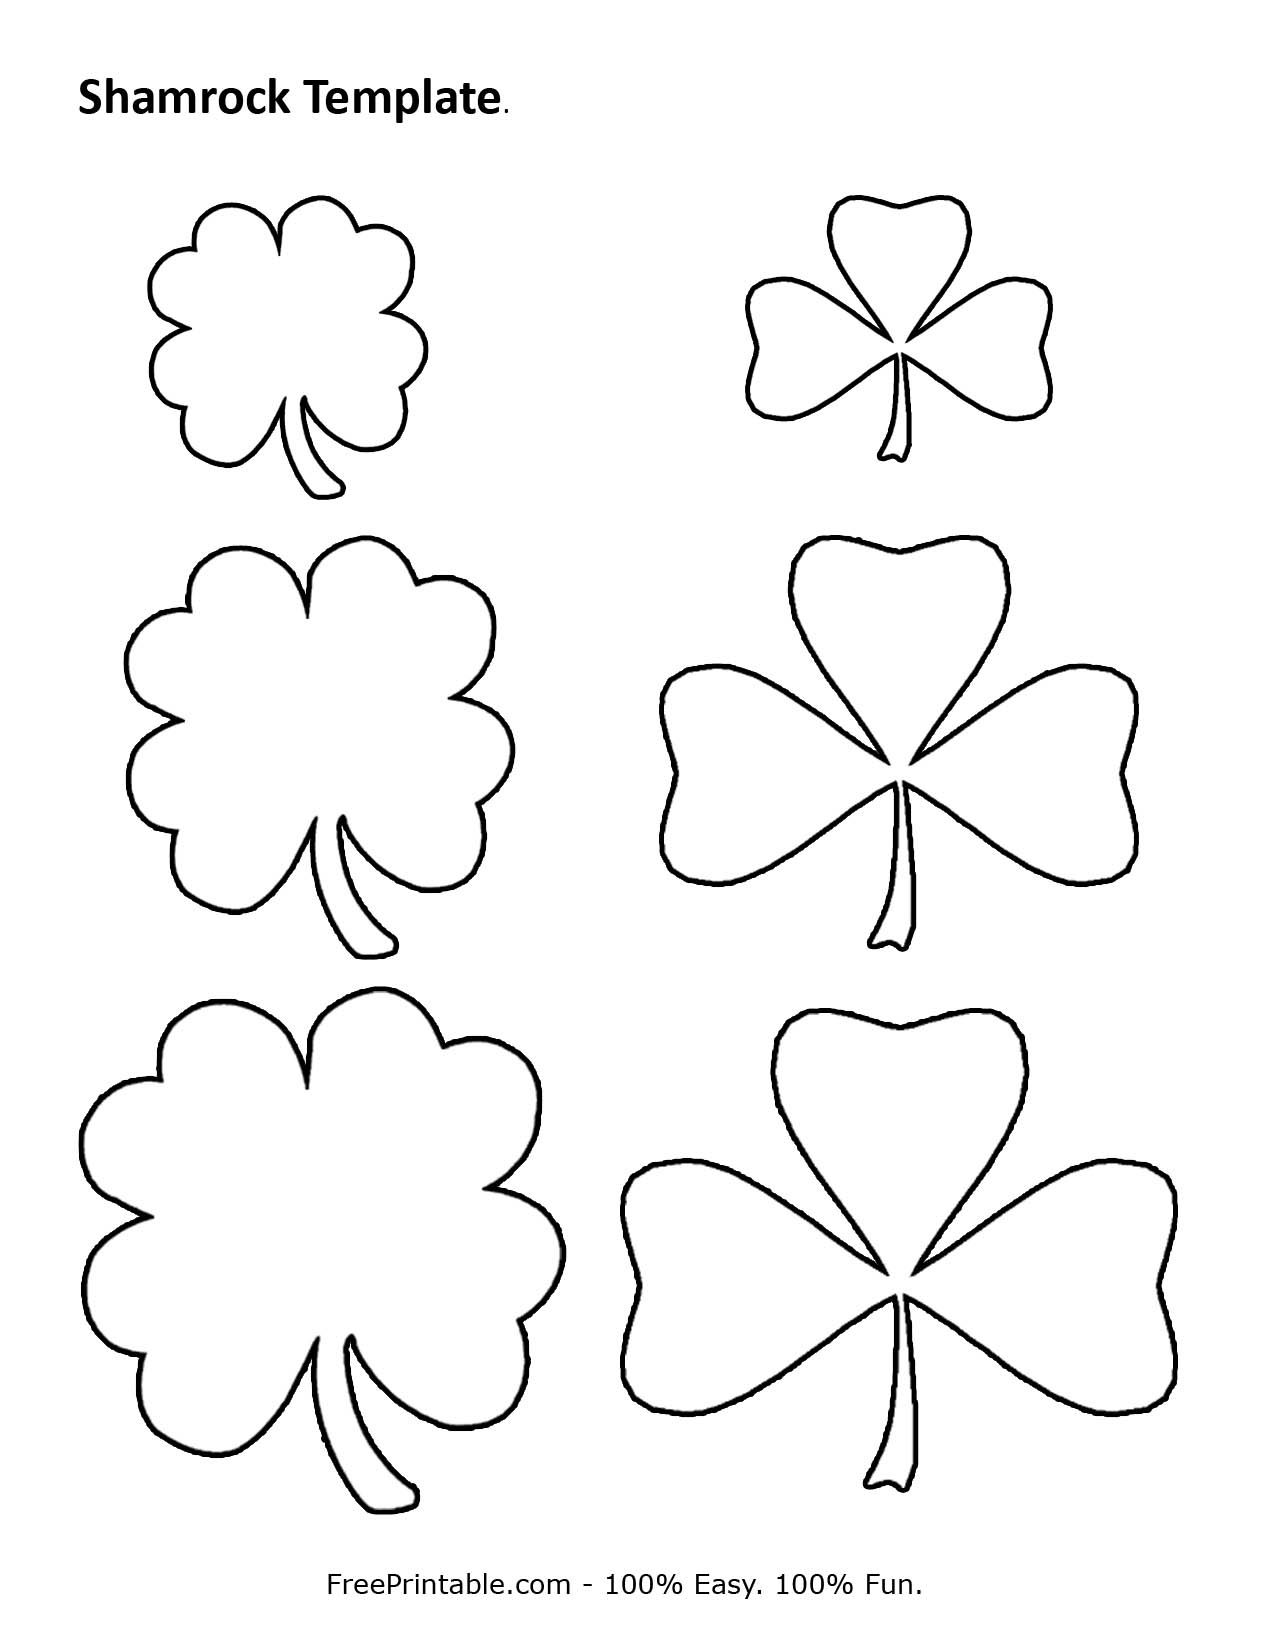 Customize Your Free Printable Shamrock Template | home | Pinterest ...